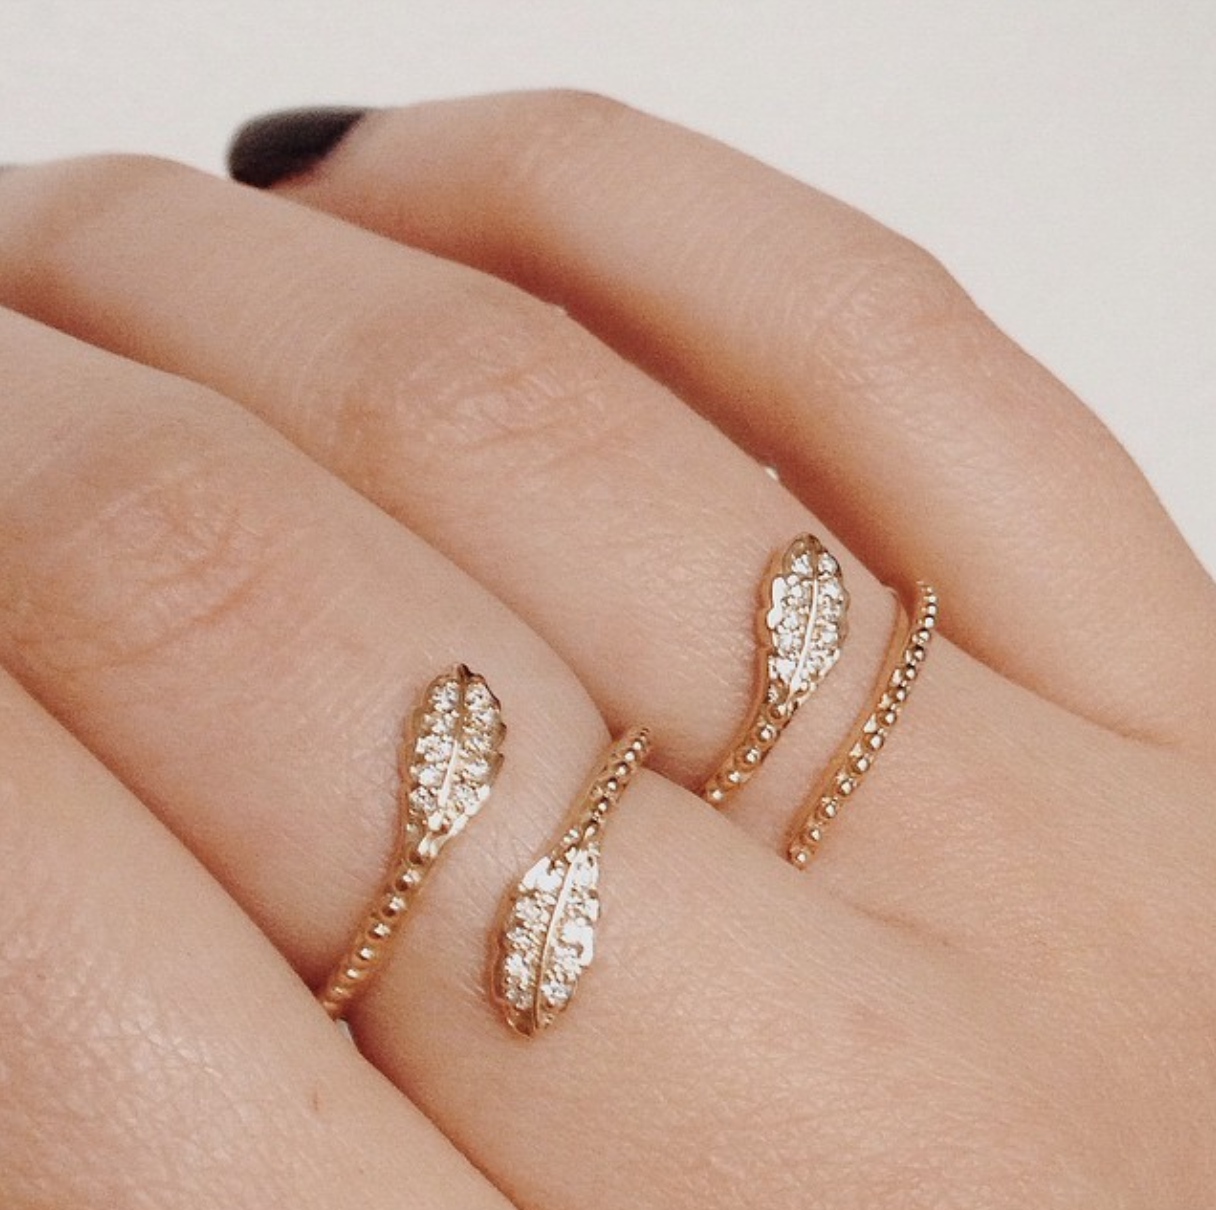 Our New Pave Leaf Collection Will Be Available On Shopvale Shortly